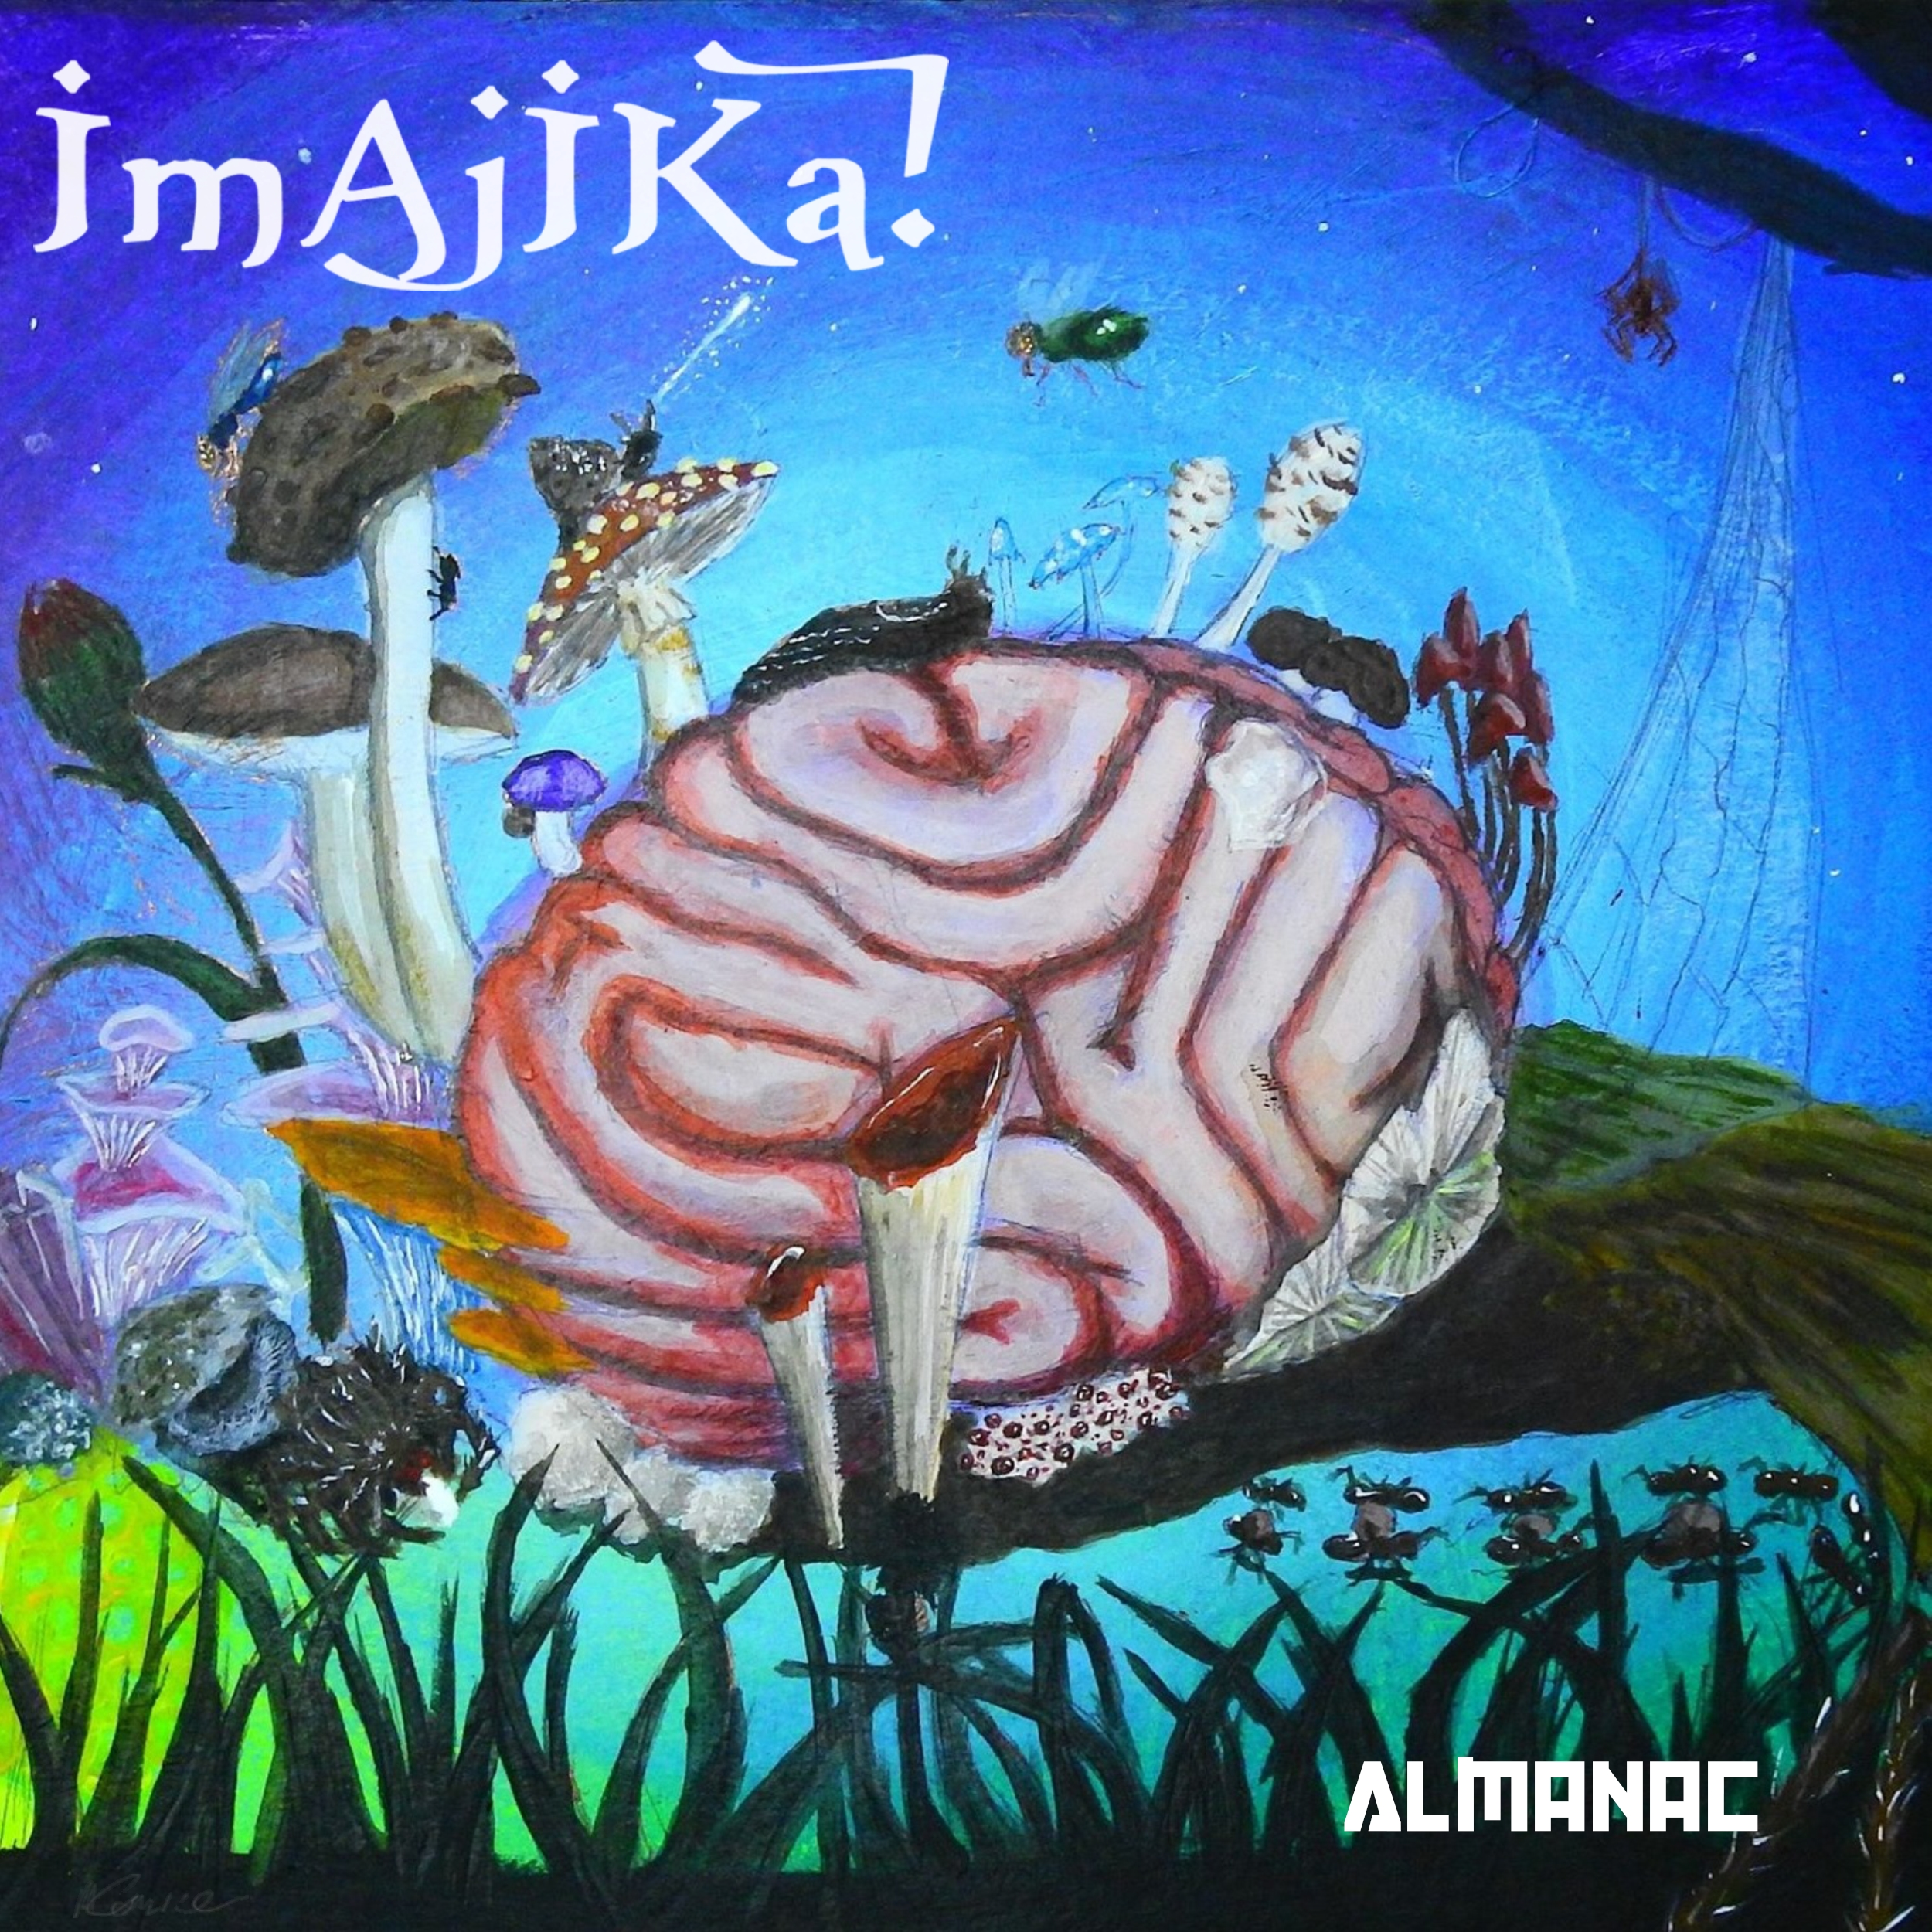 Imajika Almanac Artwork